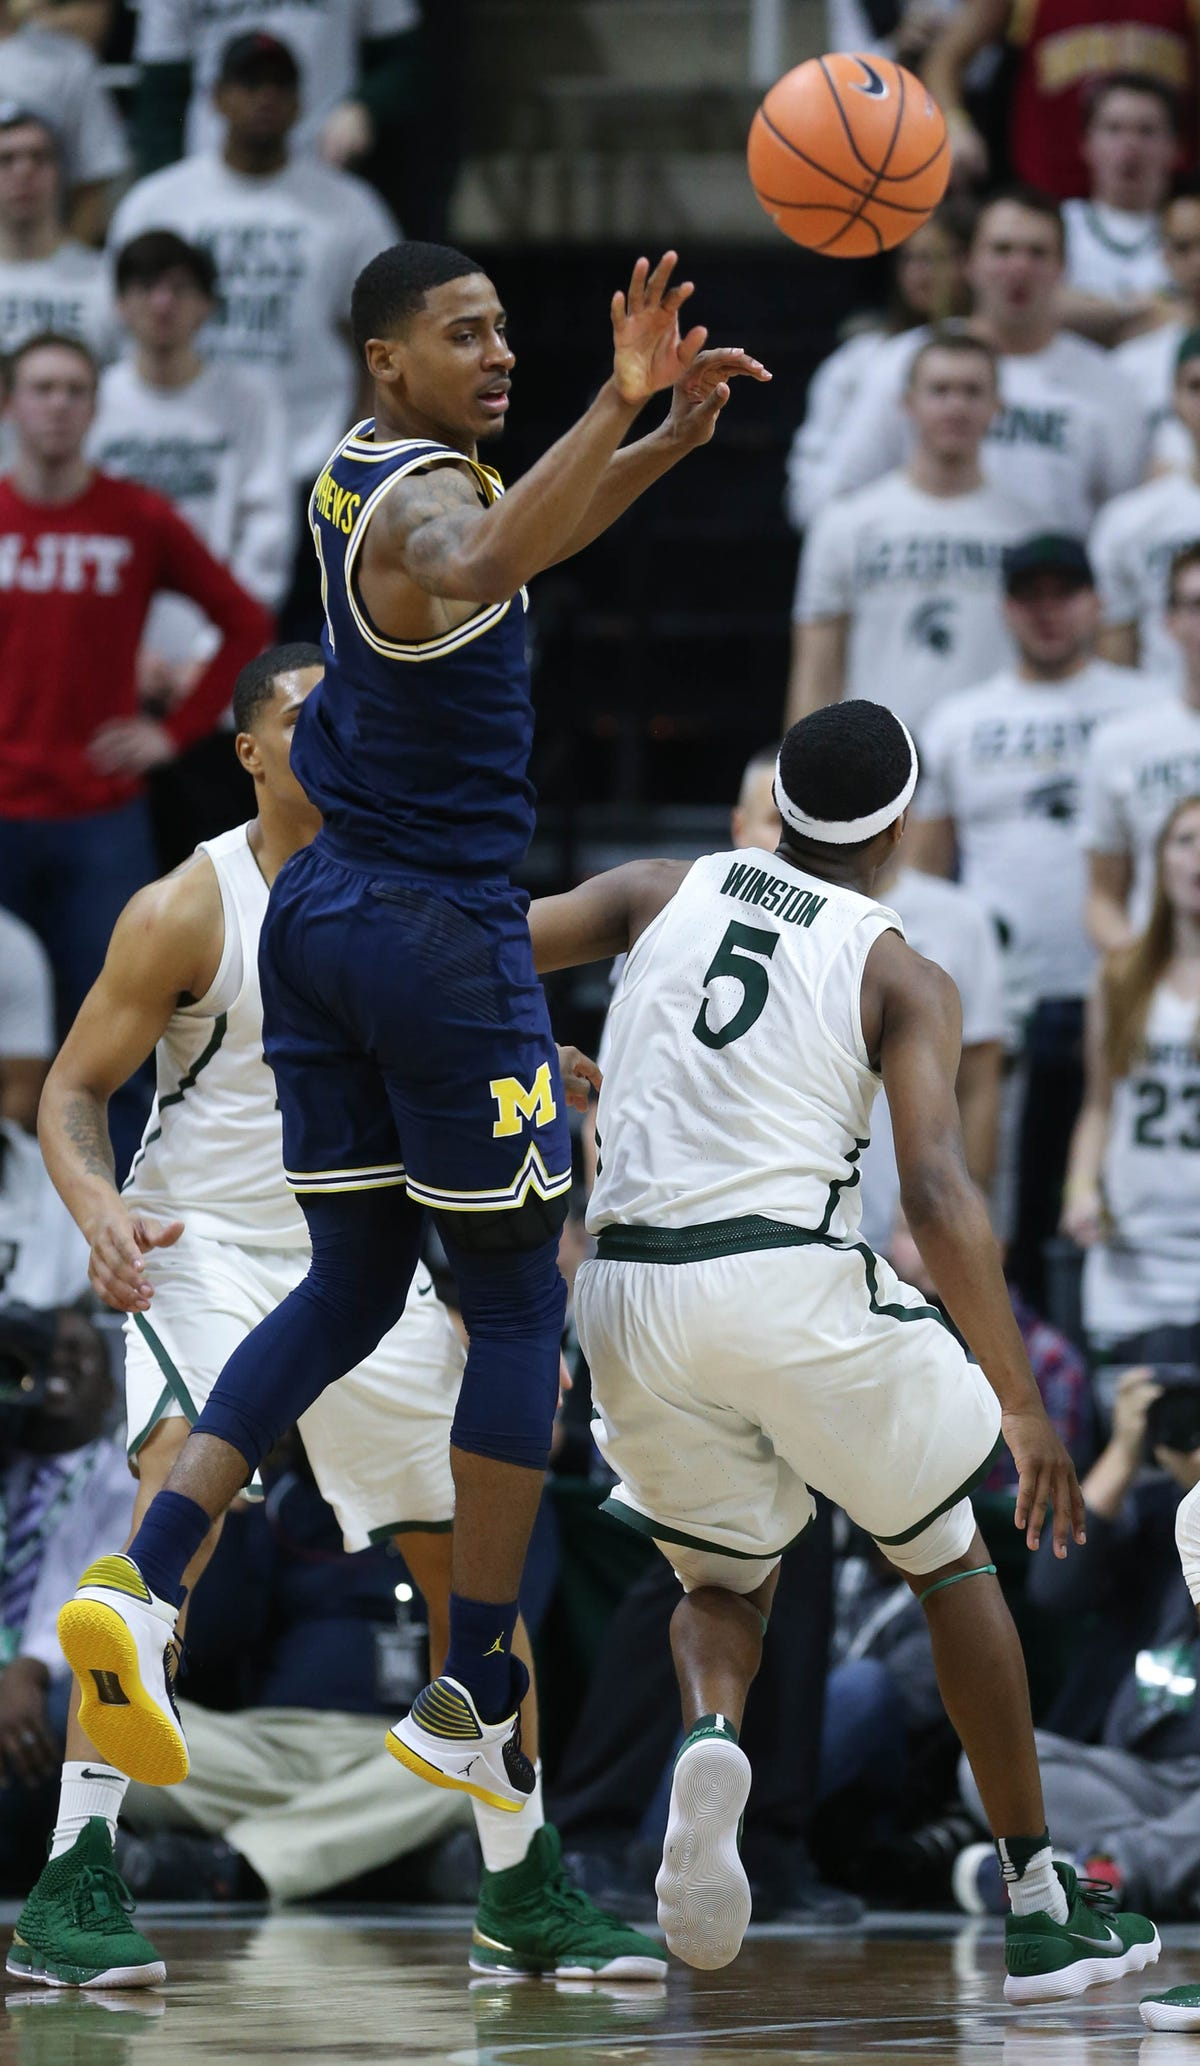 Michigan State vs  Michigan basketball: Scouting report, predictions